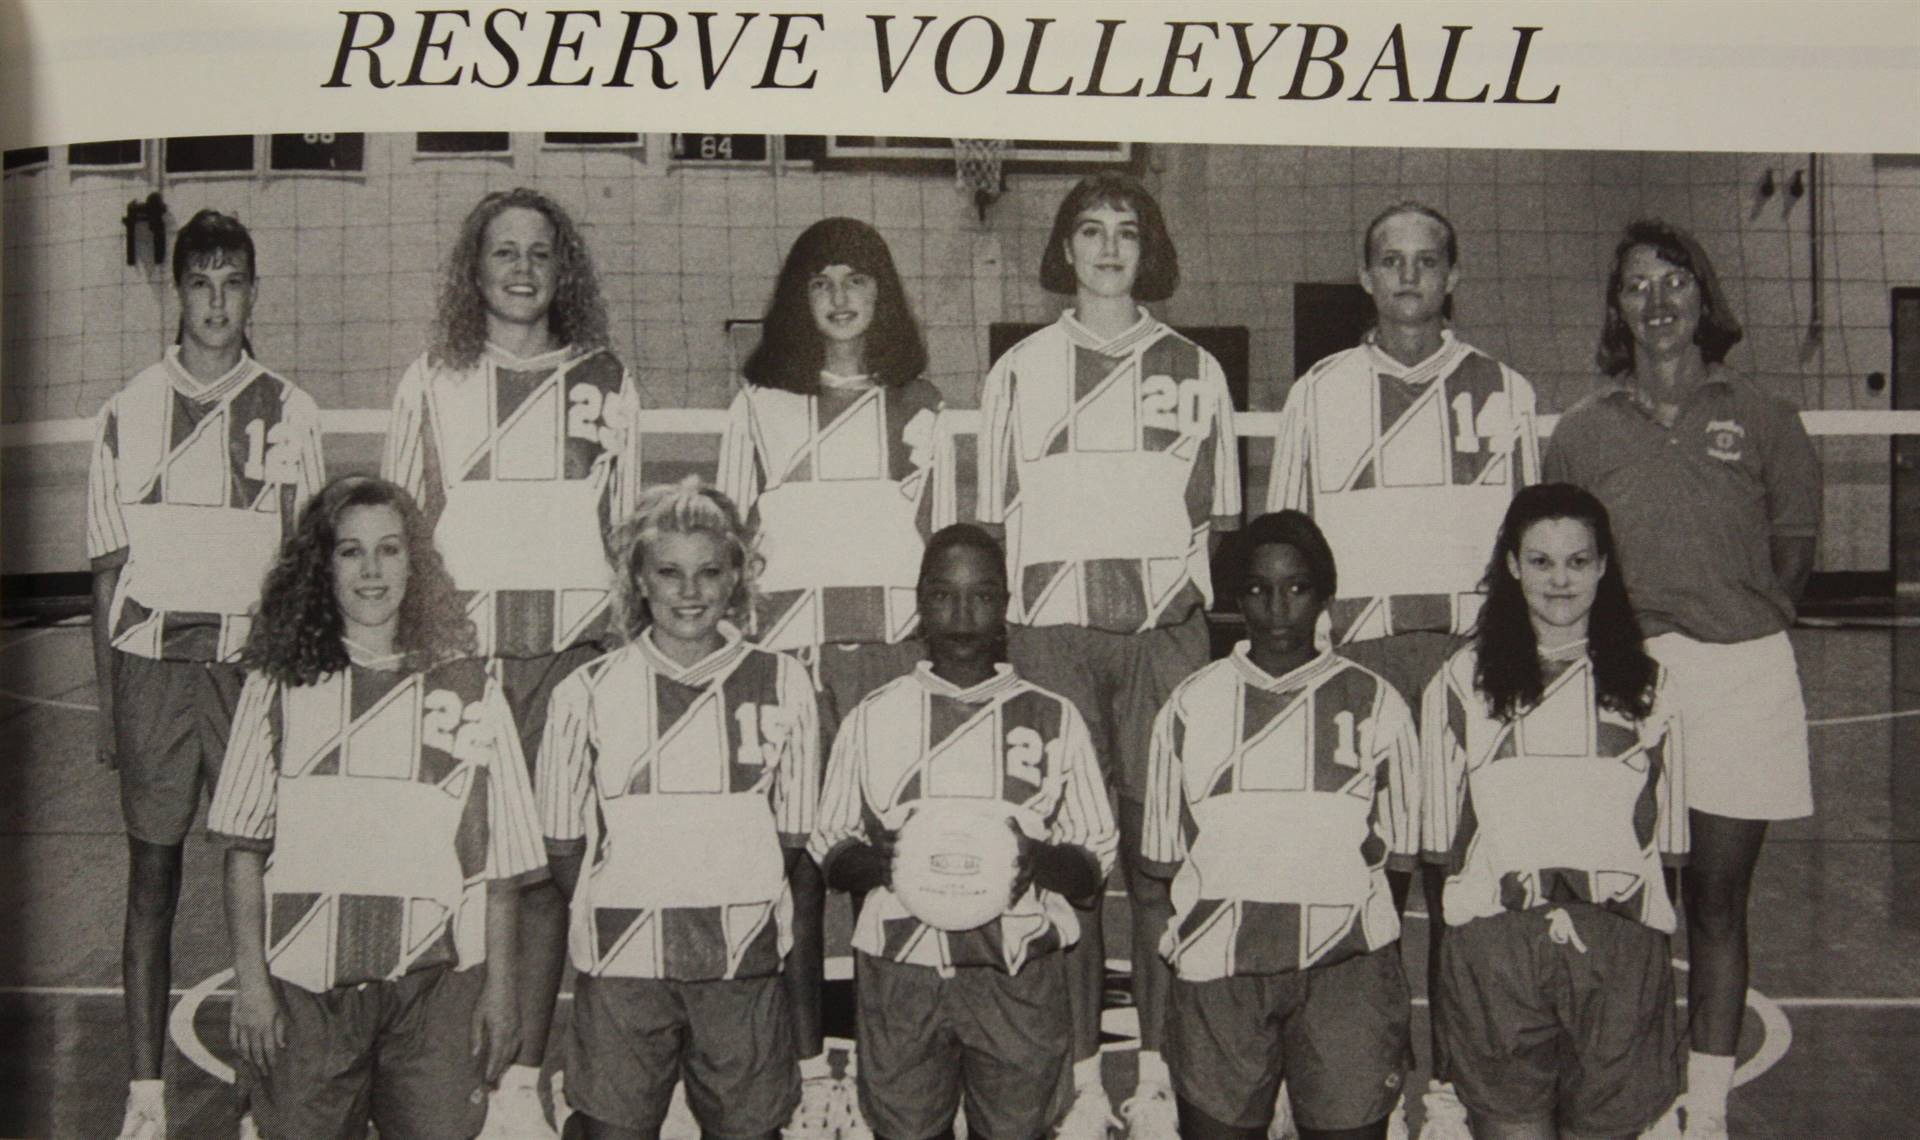 1995 Reserve Volleyball